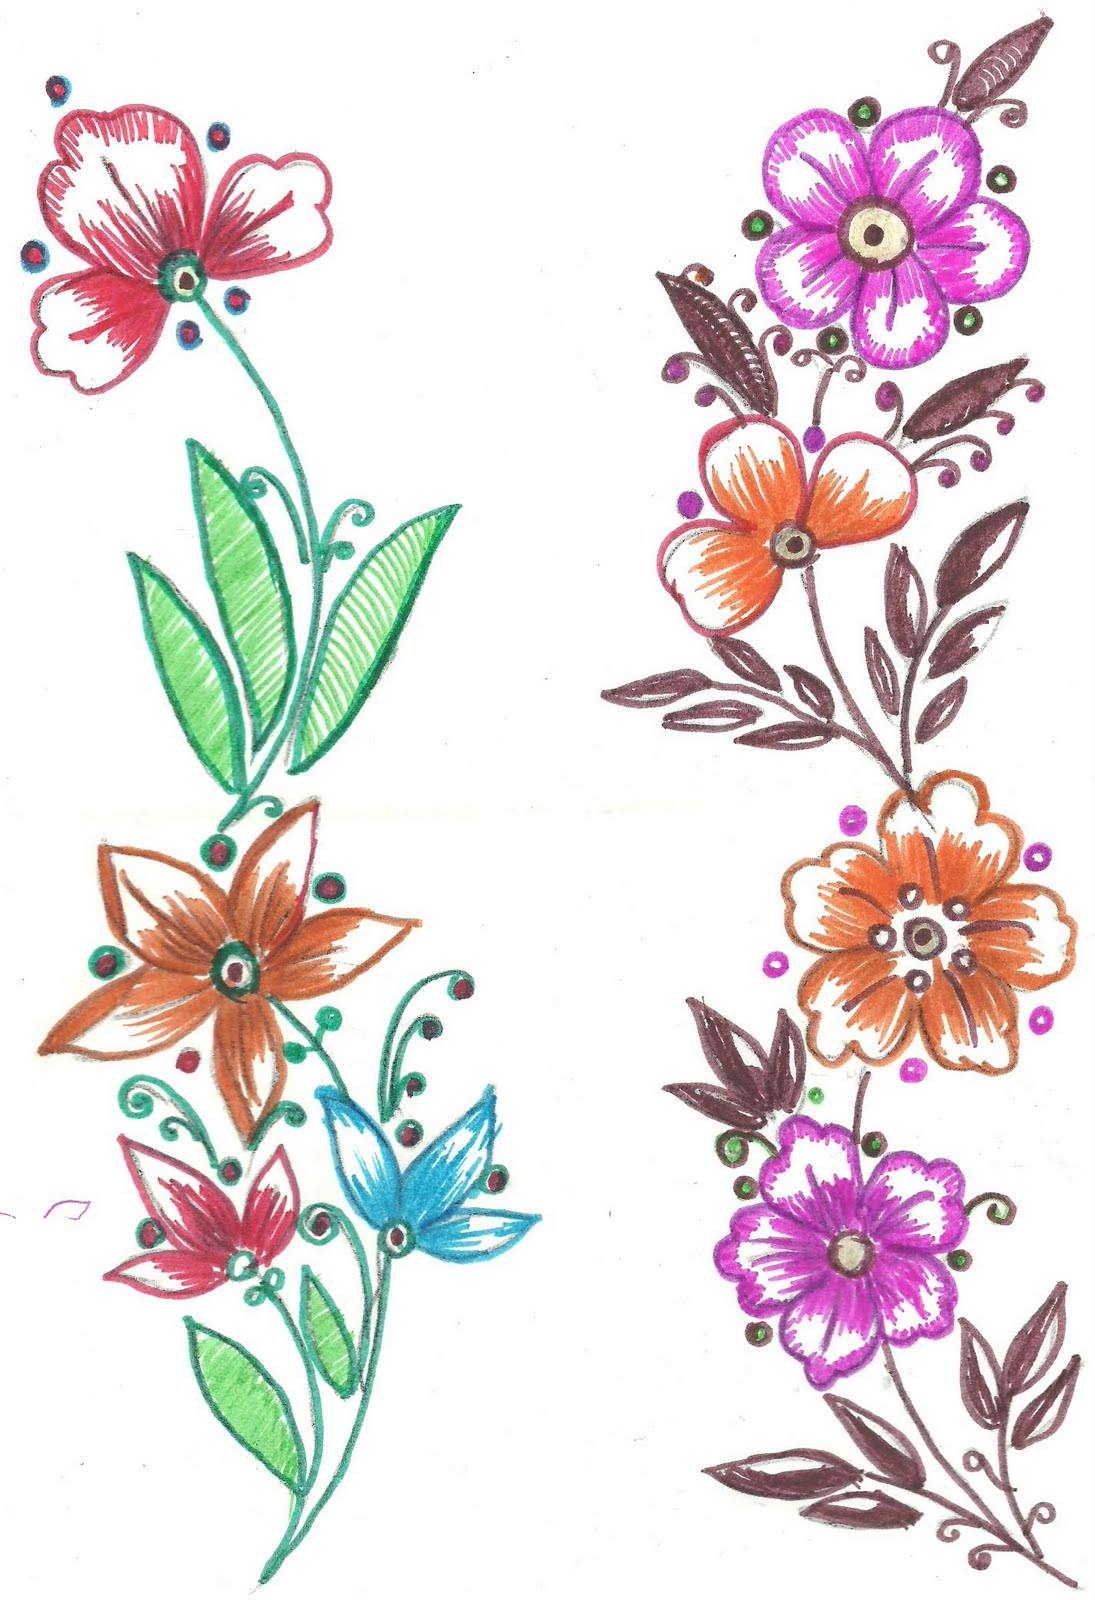 Bed sheet designs for fabric paint - Fabric Paint Designs